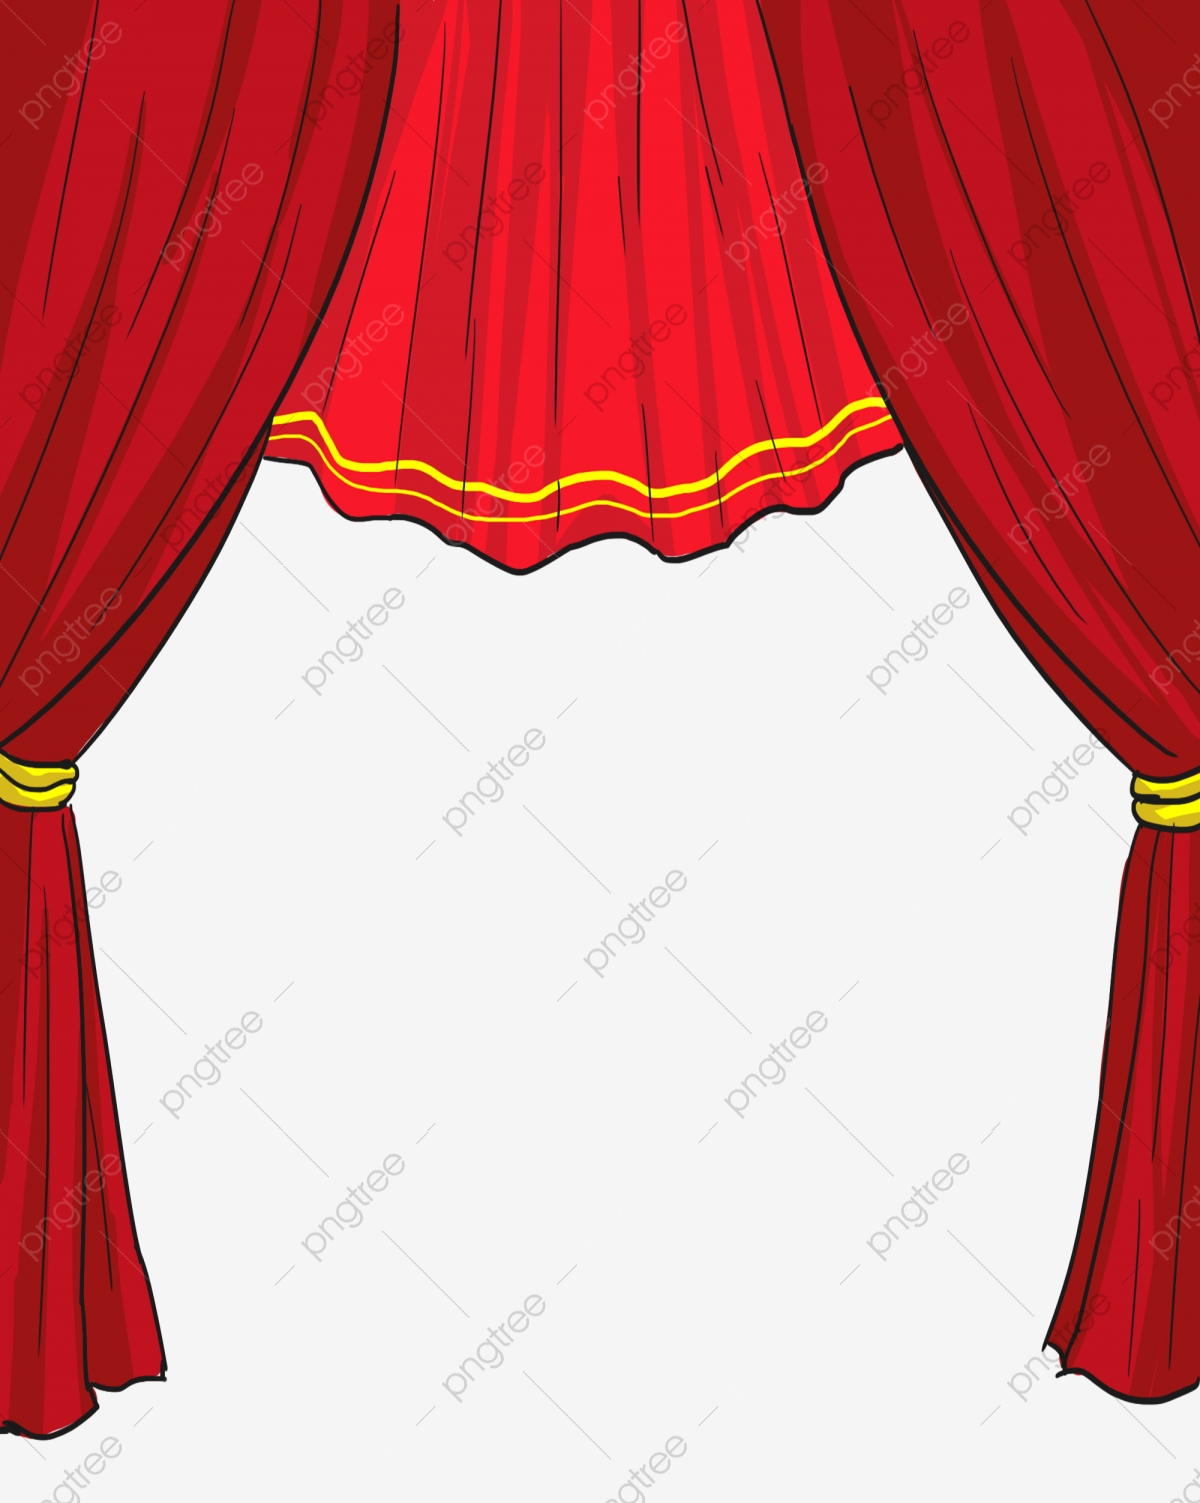 hight resolution of commercial use resource upgrade to premium plan and get license authorization upgradenow stage curtain stage clipart